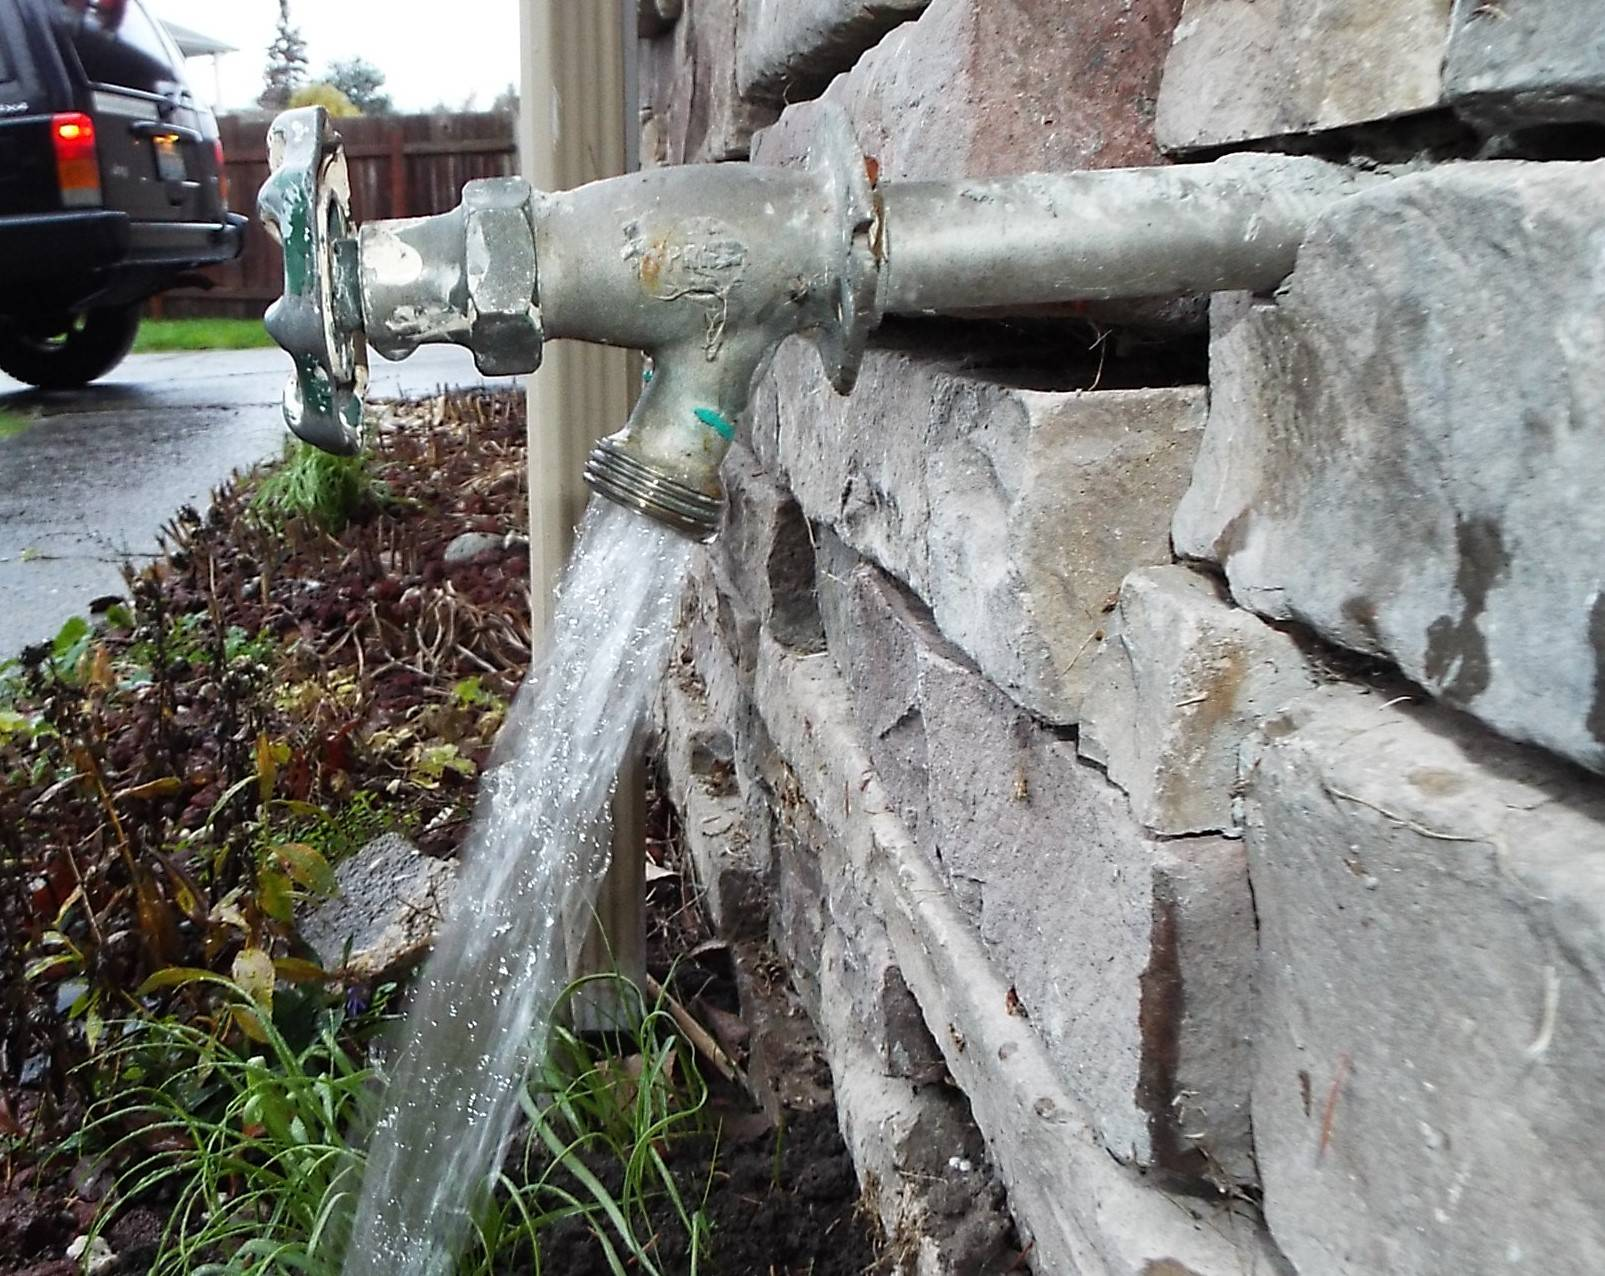 Do you have outside water faucets?